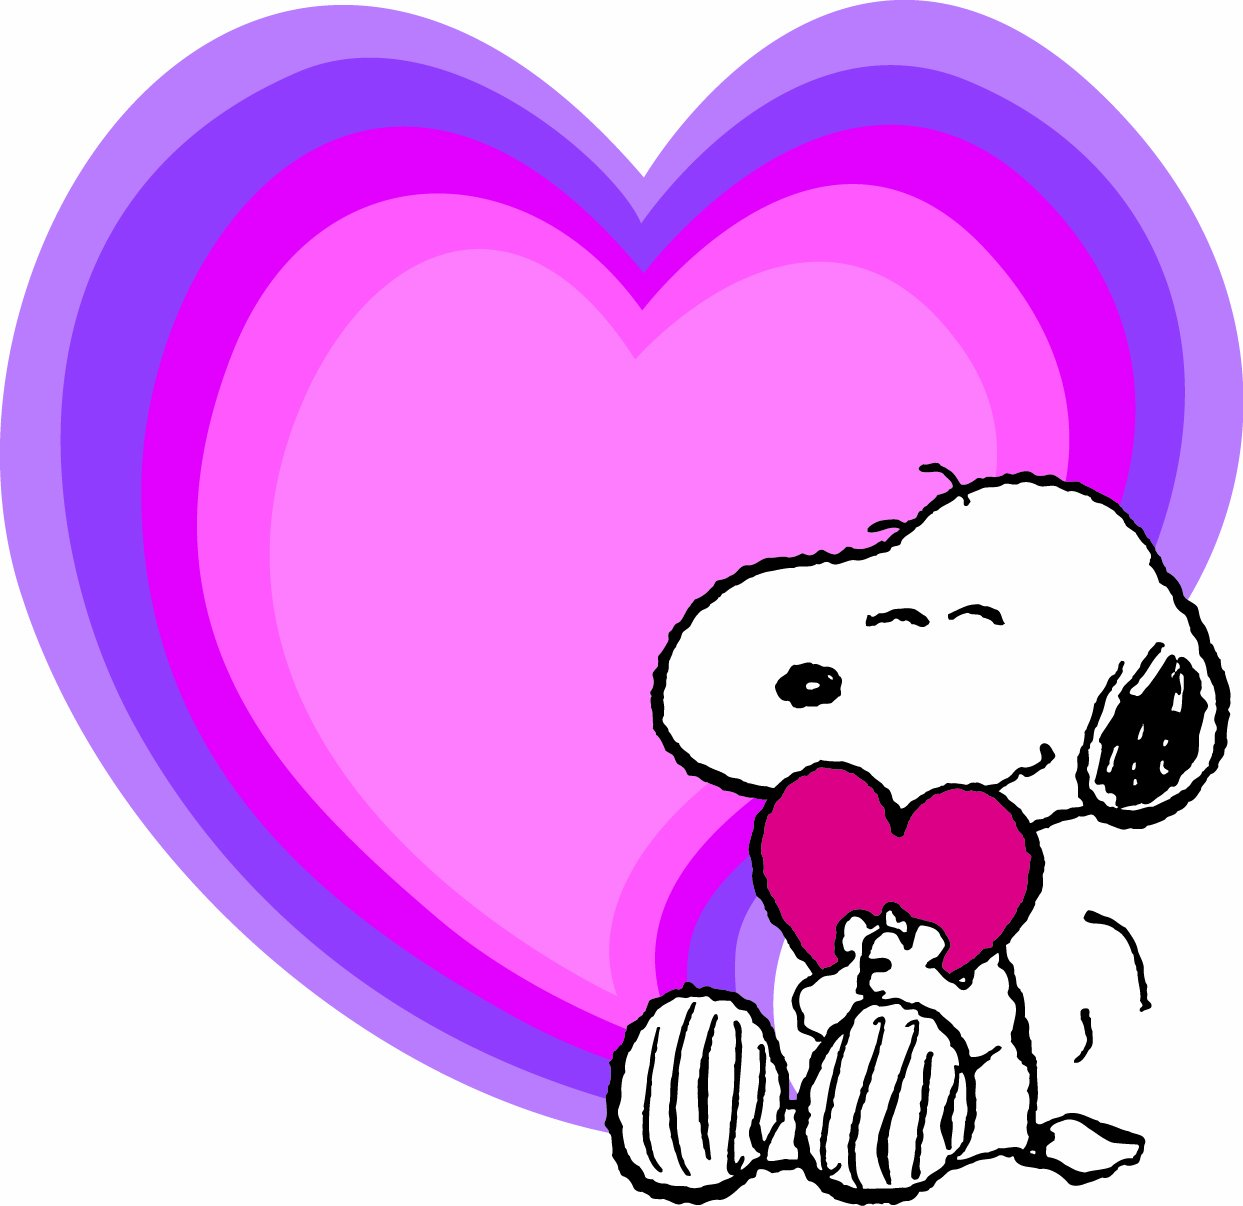 Snoopy clipart february jpg download Eureka Peanuts Valentine\'s Day Paper Cut Outs jpg download